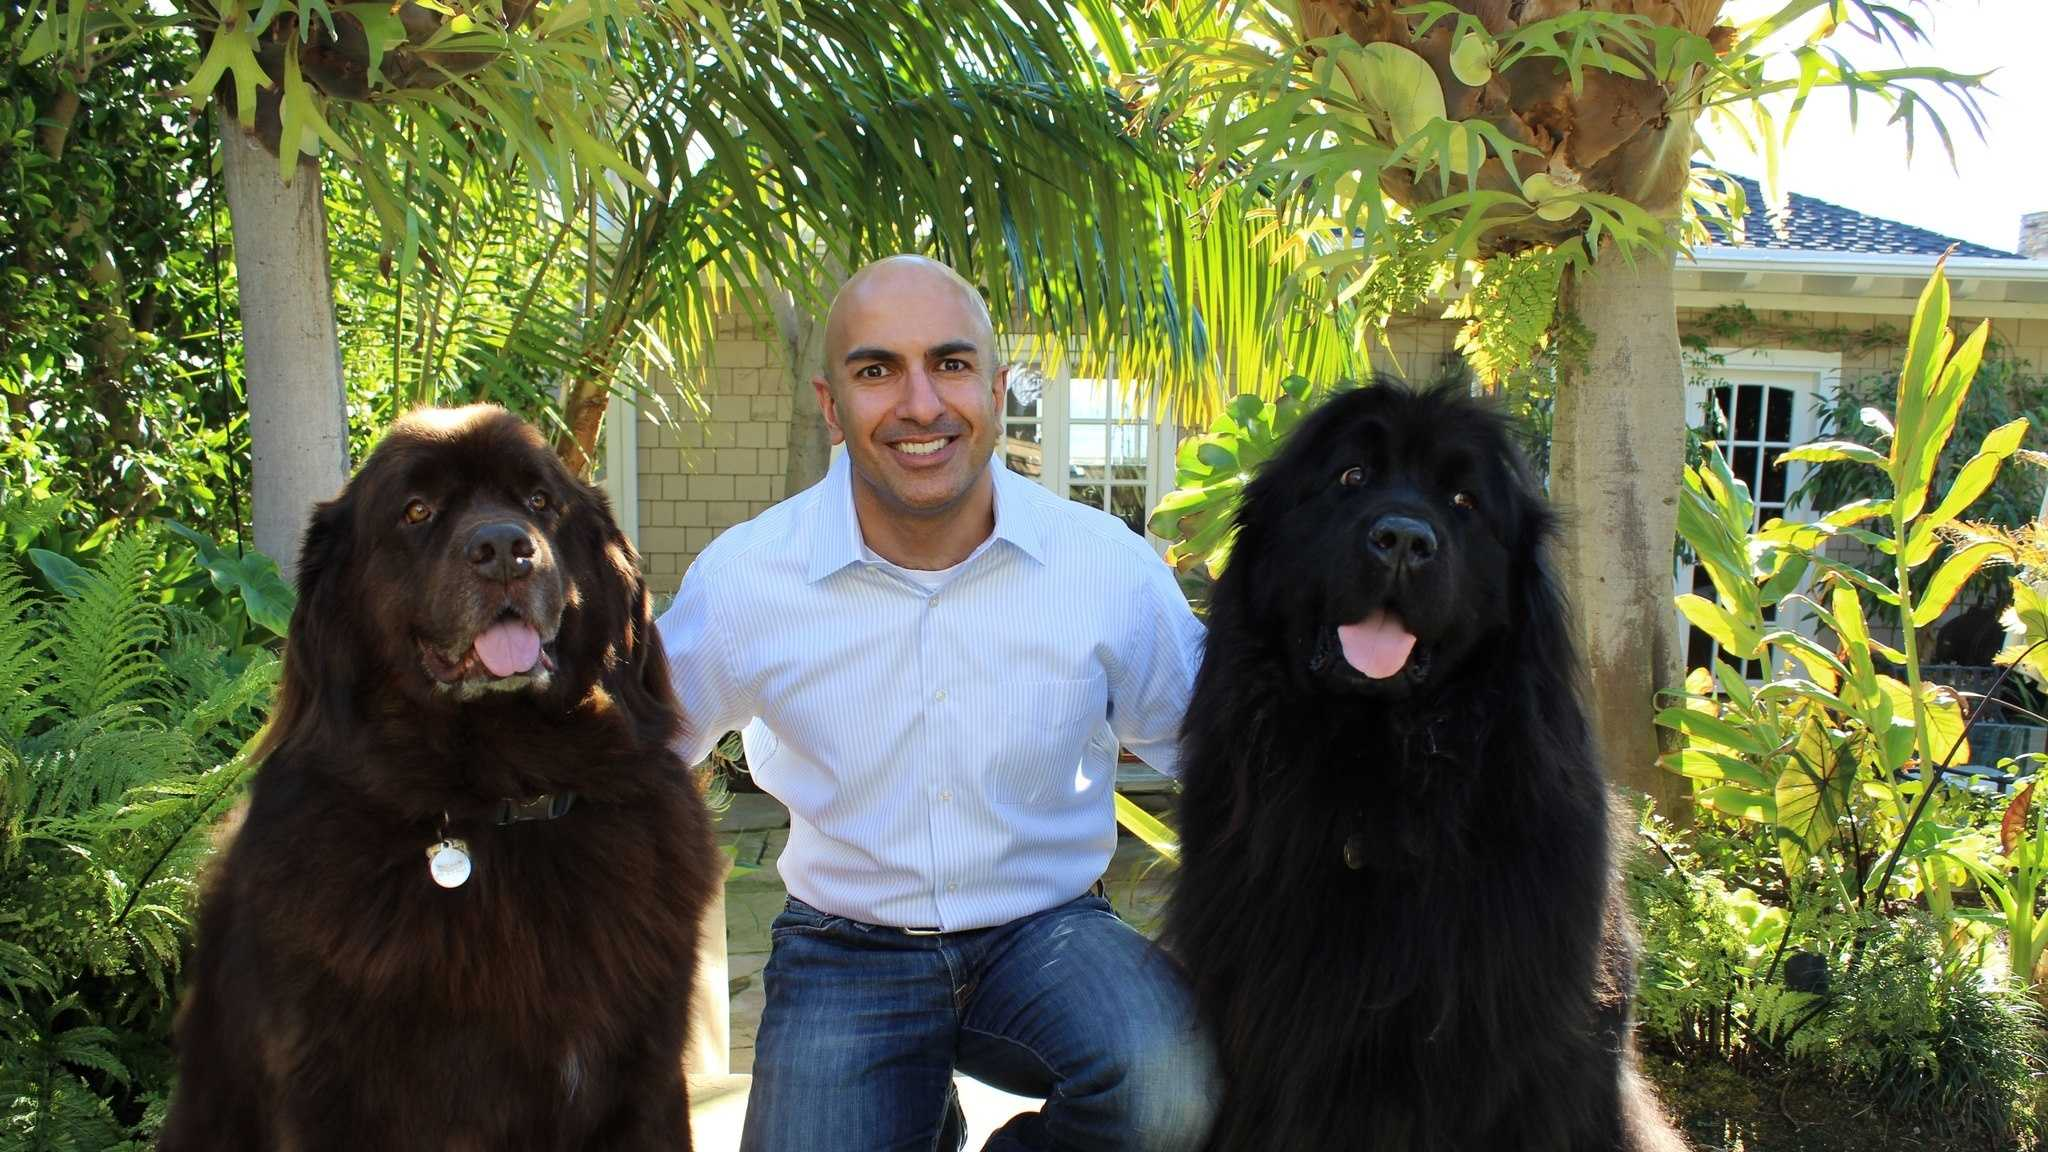 Neel Kashkari (April 3, 2014)